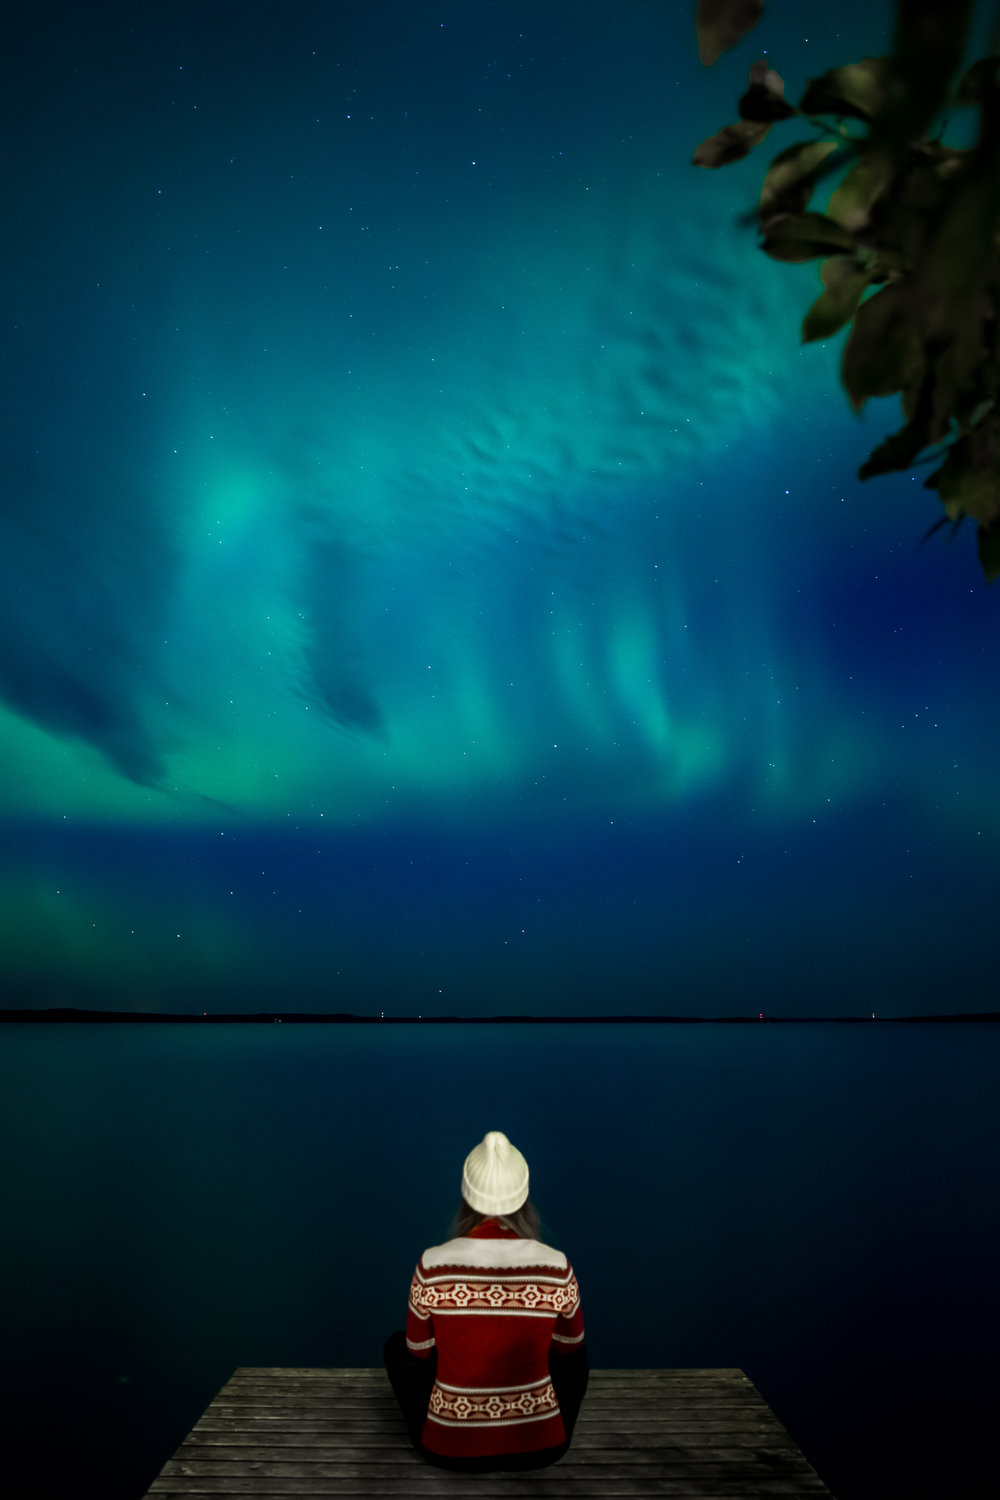 24-northern-lights-aurora-borealis-self-portrait-anna-elina-lahti-photographer.jpg